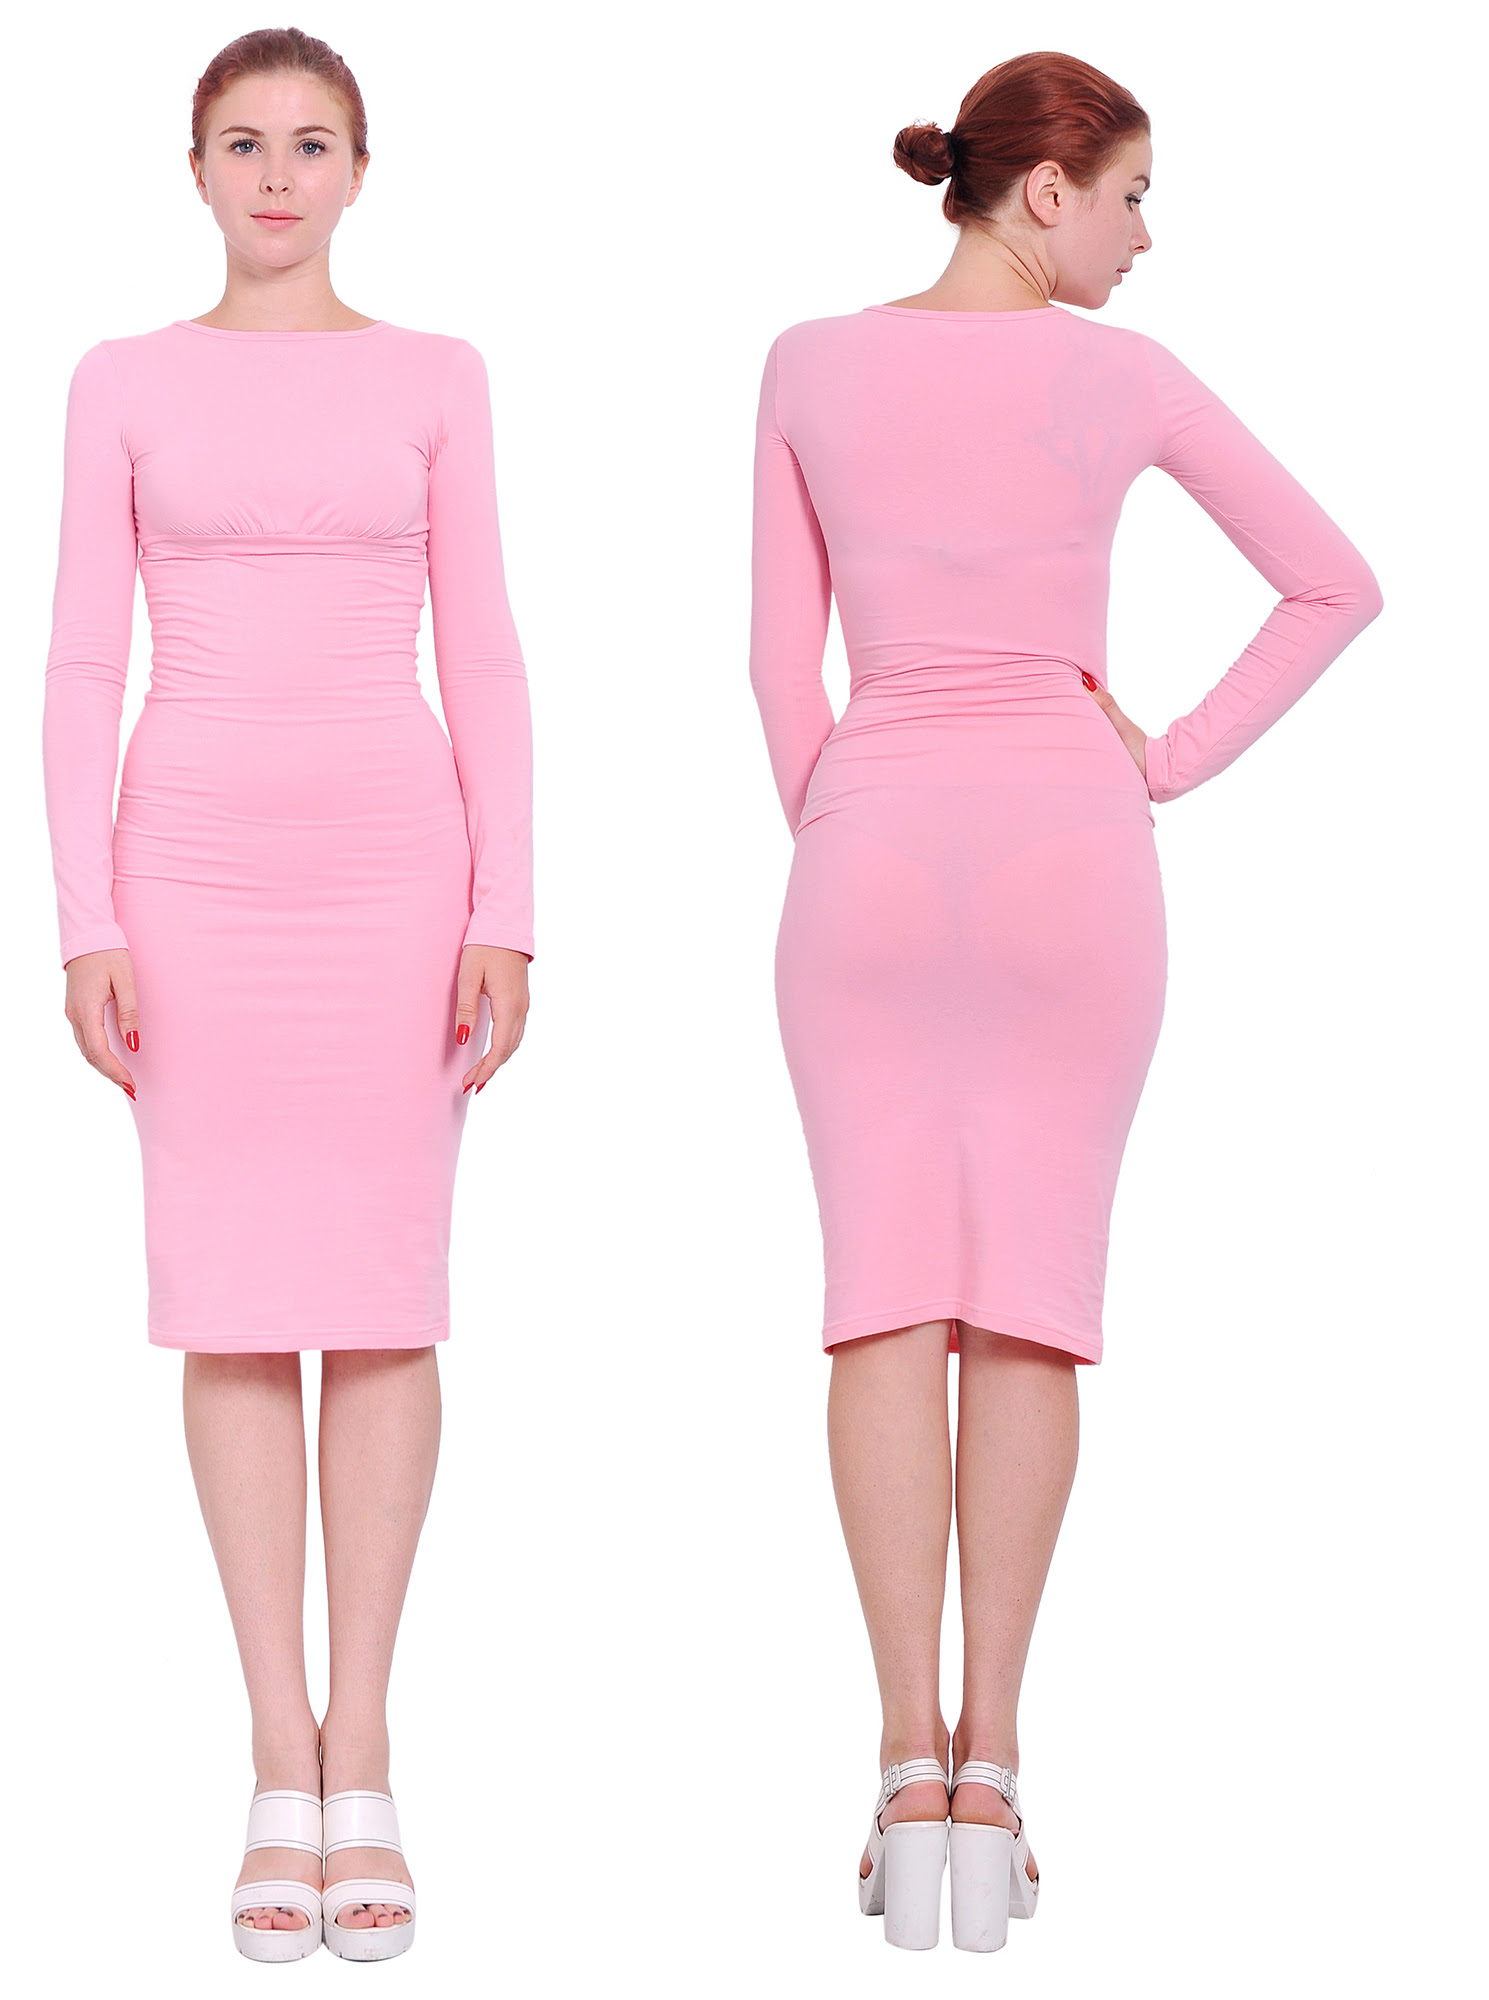 Small target size dresses long sleeve bodycon plus womens india